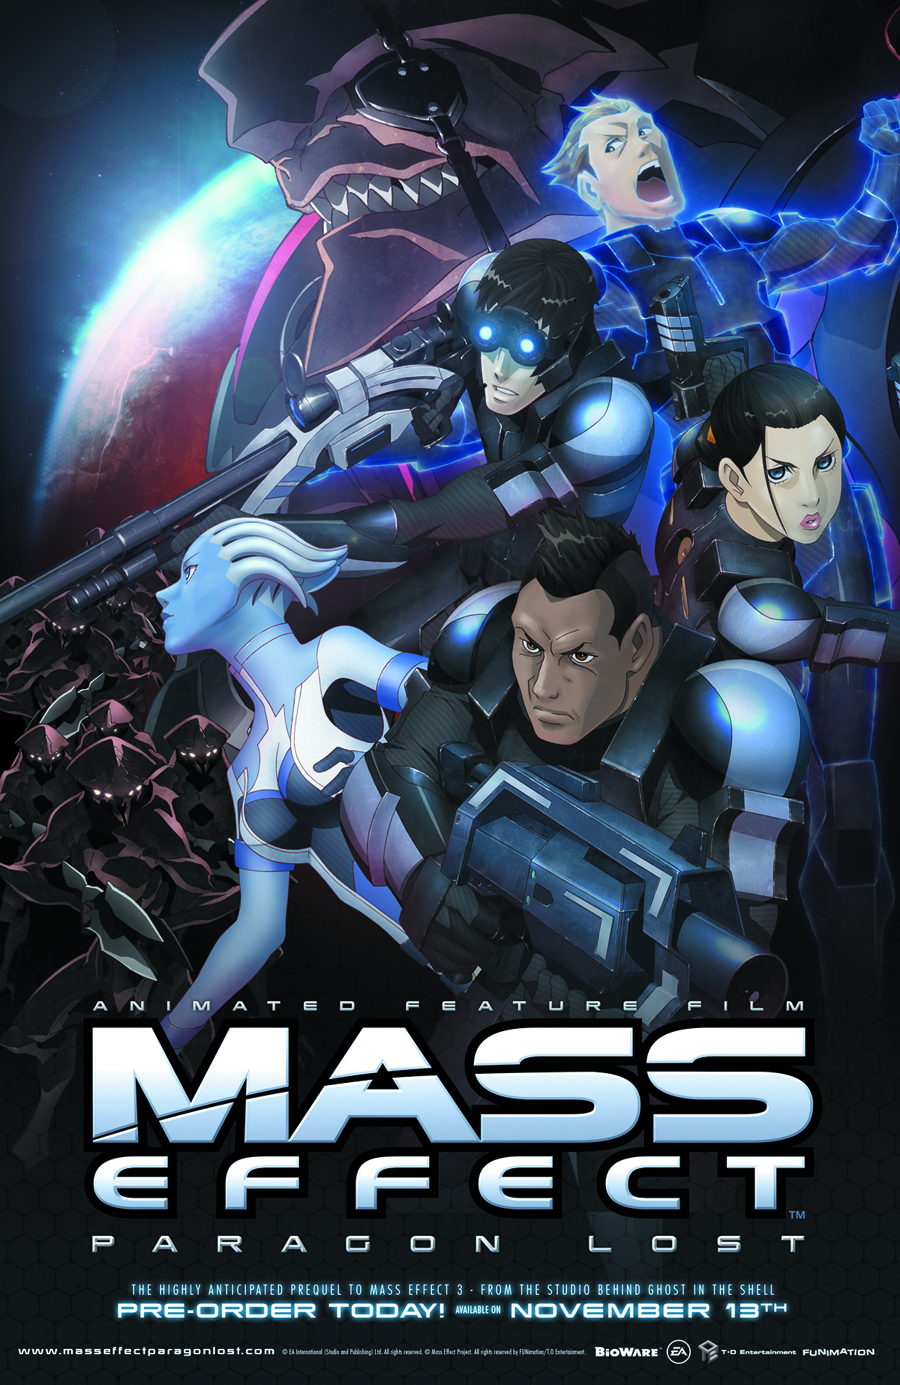 MASS EFFECT PARAGON LOST BD + DVD